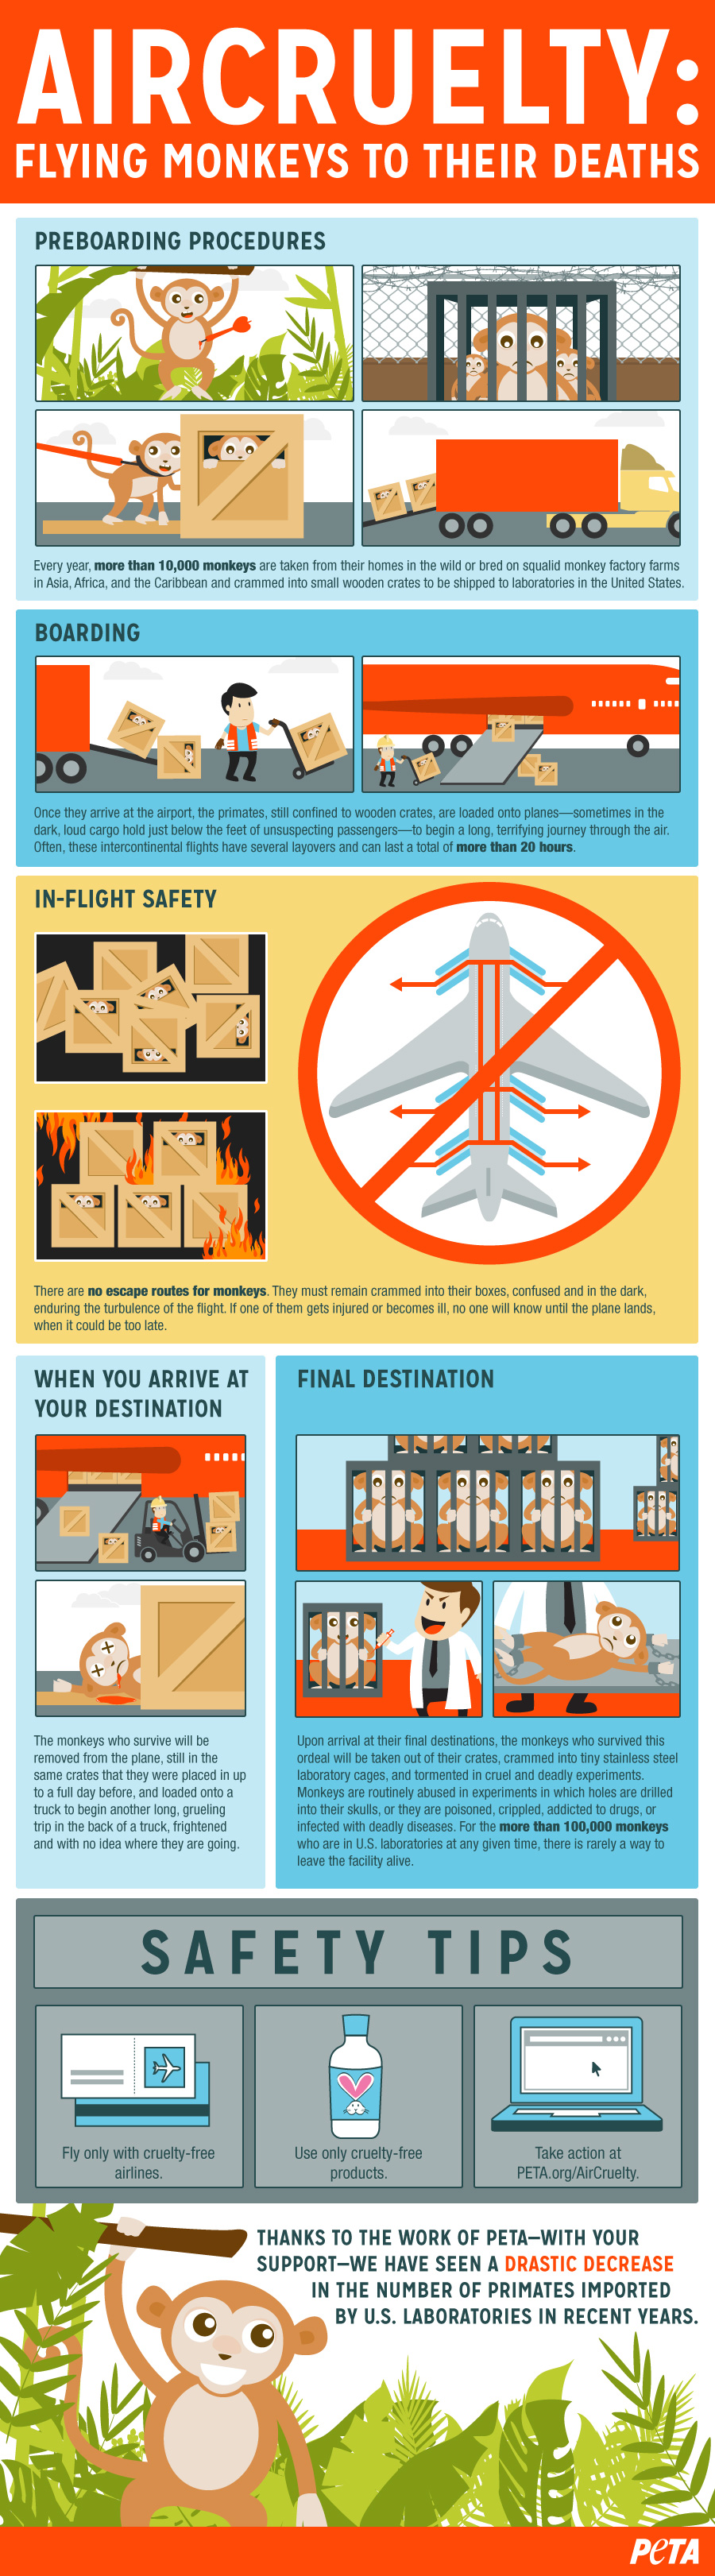 Air Cruelty Infographic